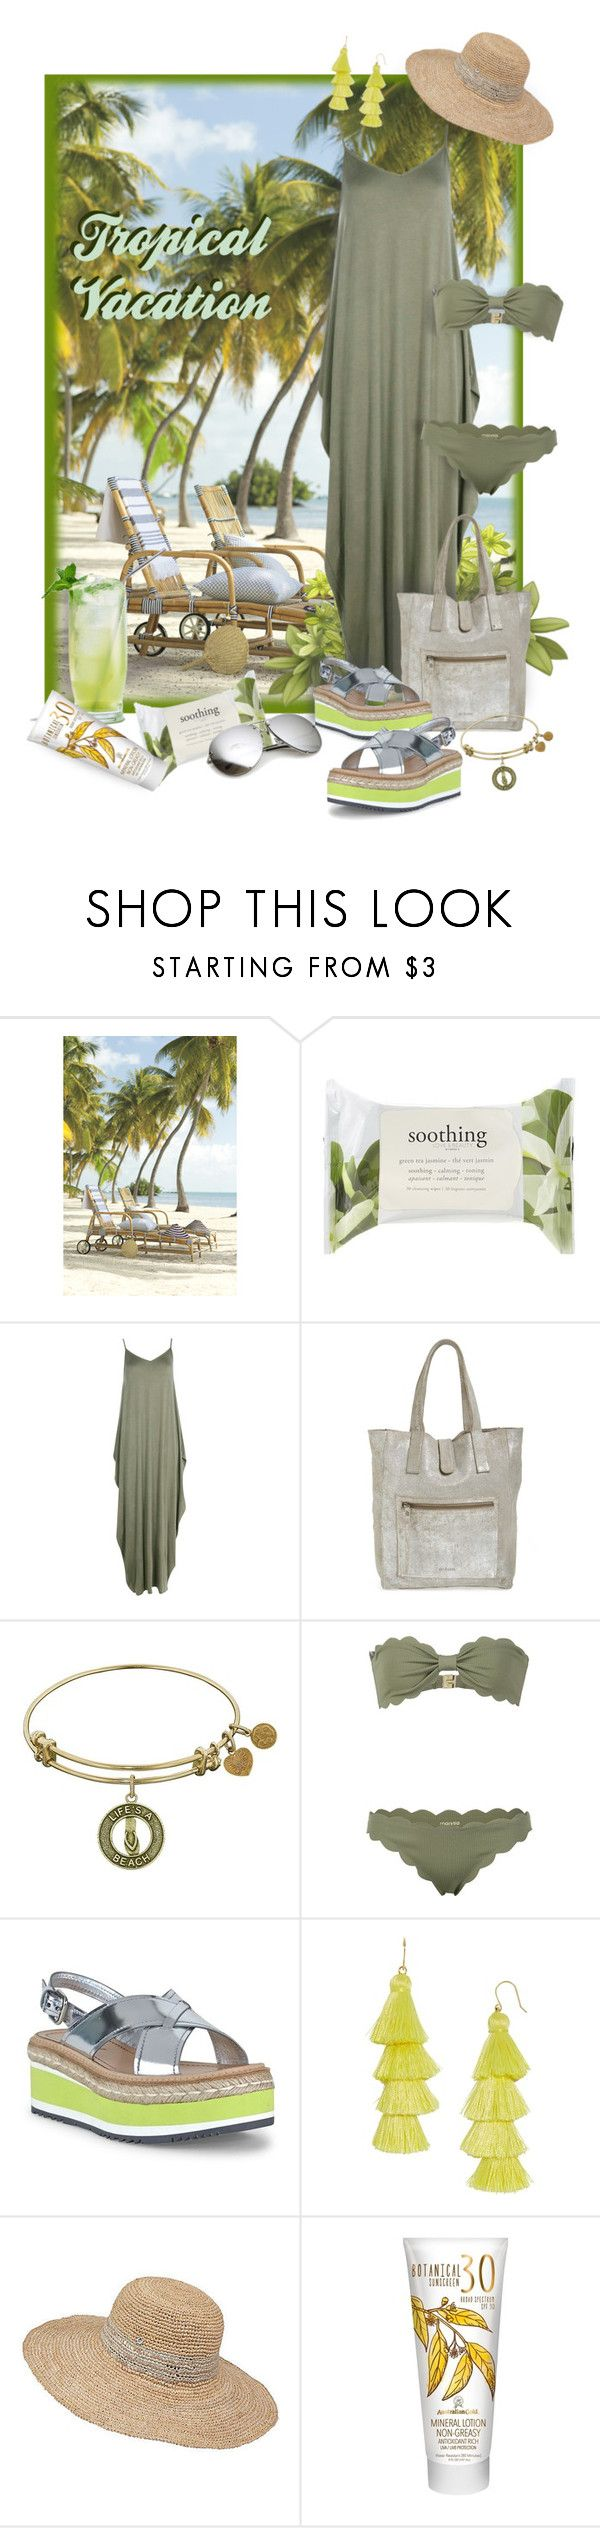 """""""Welcome to Paradise"""" by valeria-meira ❤ liked on Polyvore featuring Forever 21, Trilogy, Boohoo, Day & Mood, Marysia Swim, Prada, BaubleBar, Frontgate, Australian Gold and TropicalVacation"""